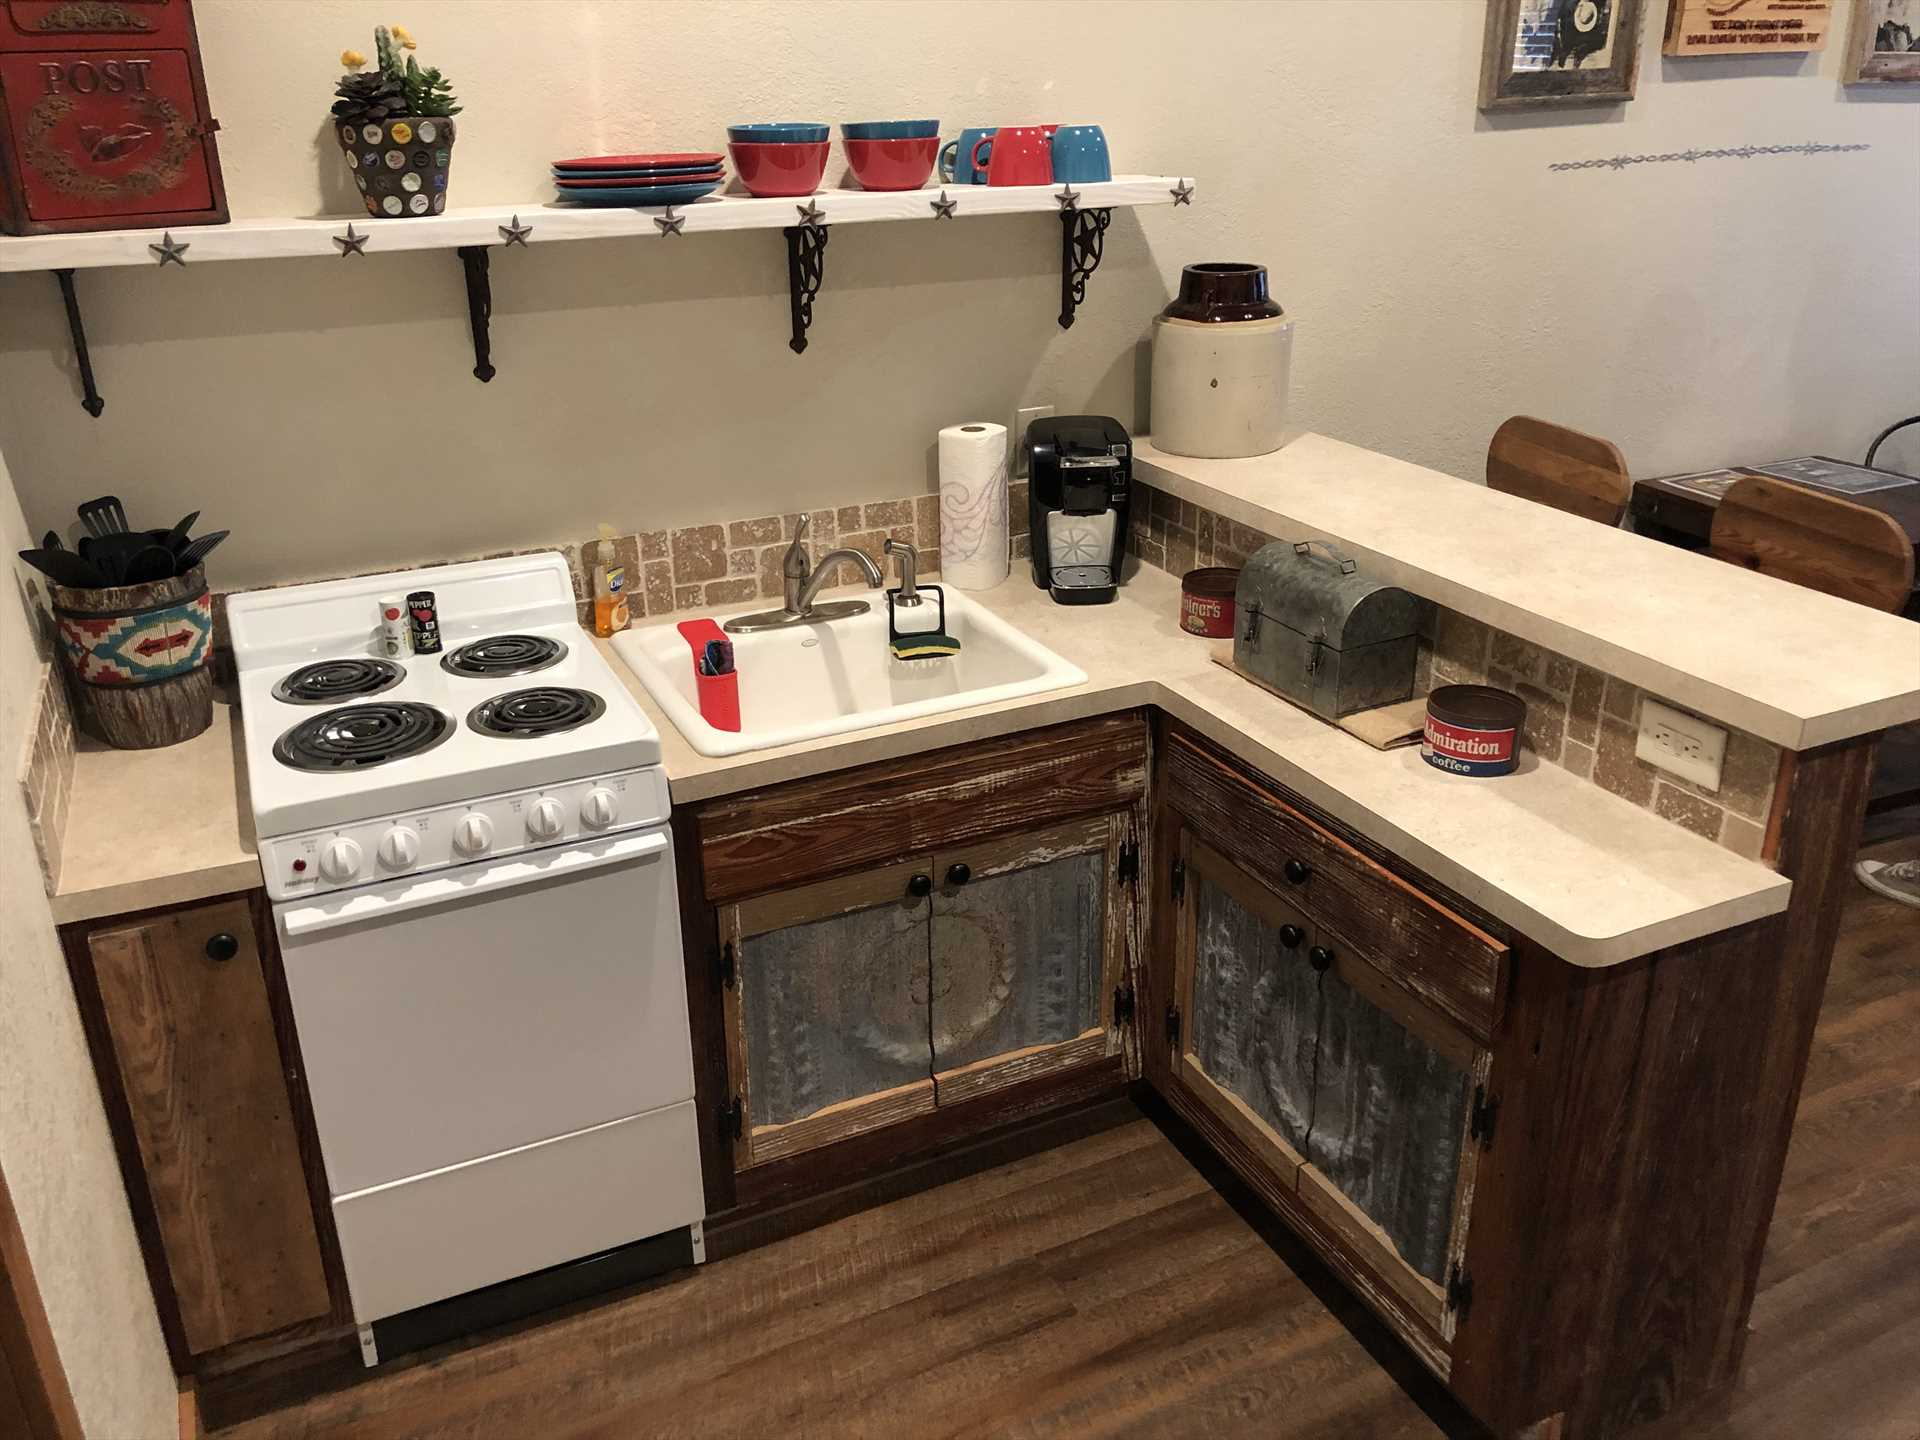 Wonderful ranch-style decor with modern amenities! We're pretty sure the ranch hands of olden days didn't have a K-Cup coffee maker.